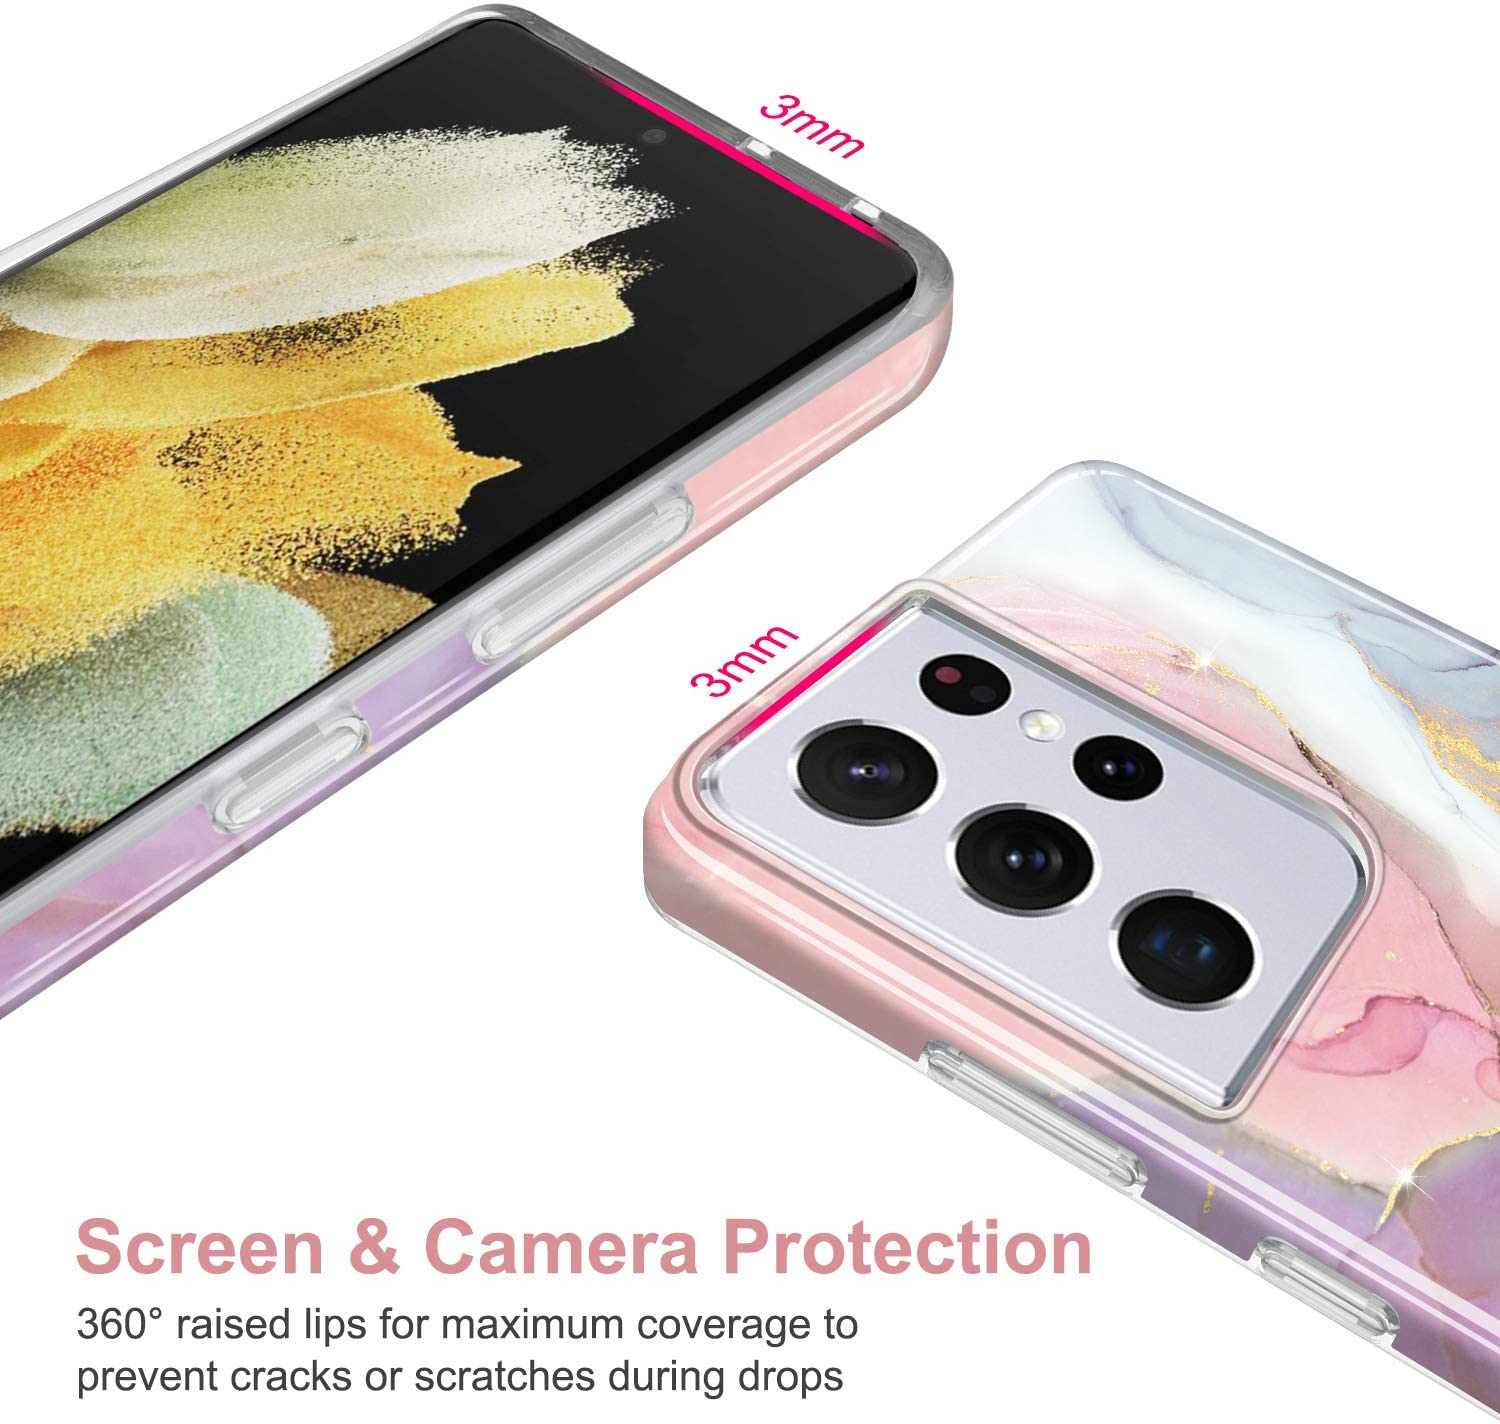 JIAXIUFEN Galaxy S21 Ultra Case Gold Sparkle Glitter Marble Slim Shockproof TPU Soft Rubber Silicone Cover Phone Case for Samsung Galaxy S21 Ultra 5G 6.8 inch 2021 Pink Purple